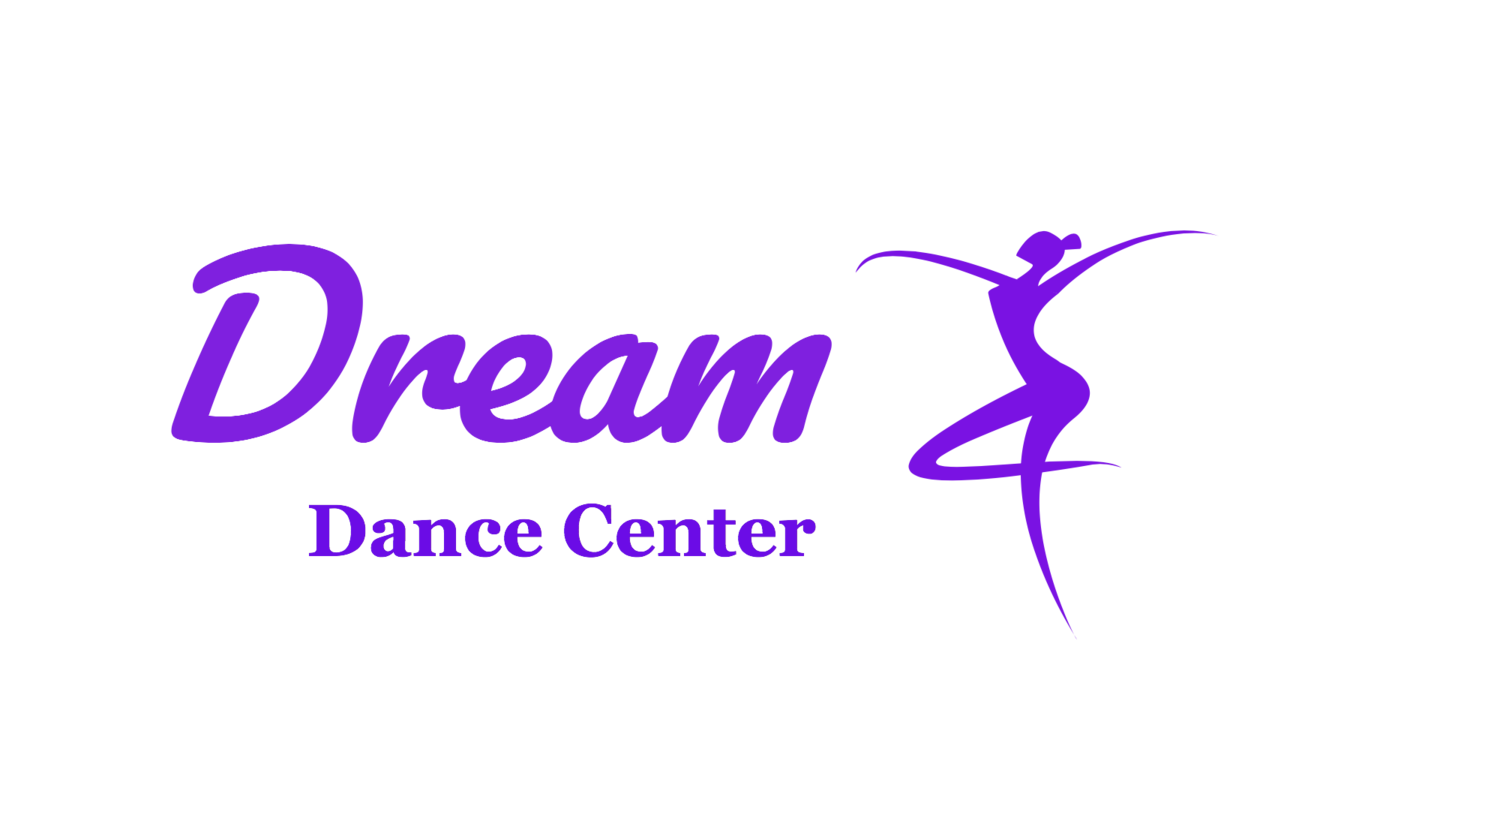 Dream Dance Center